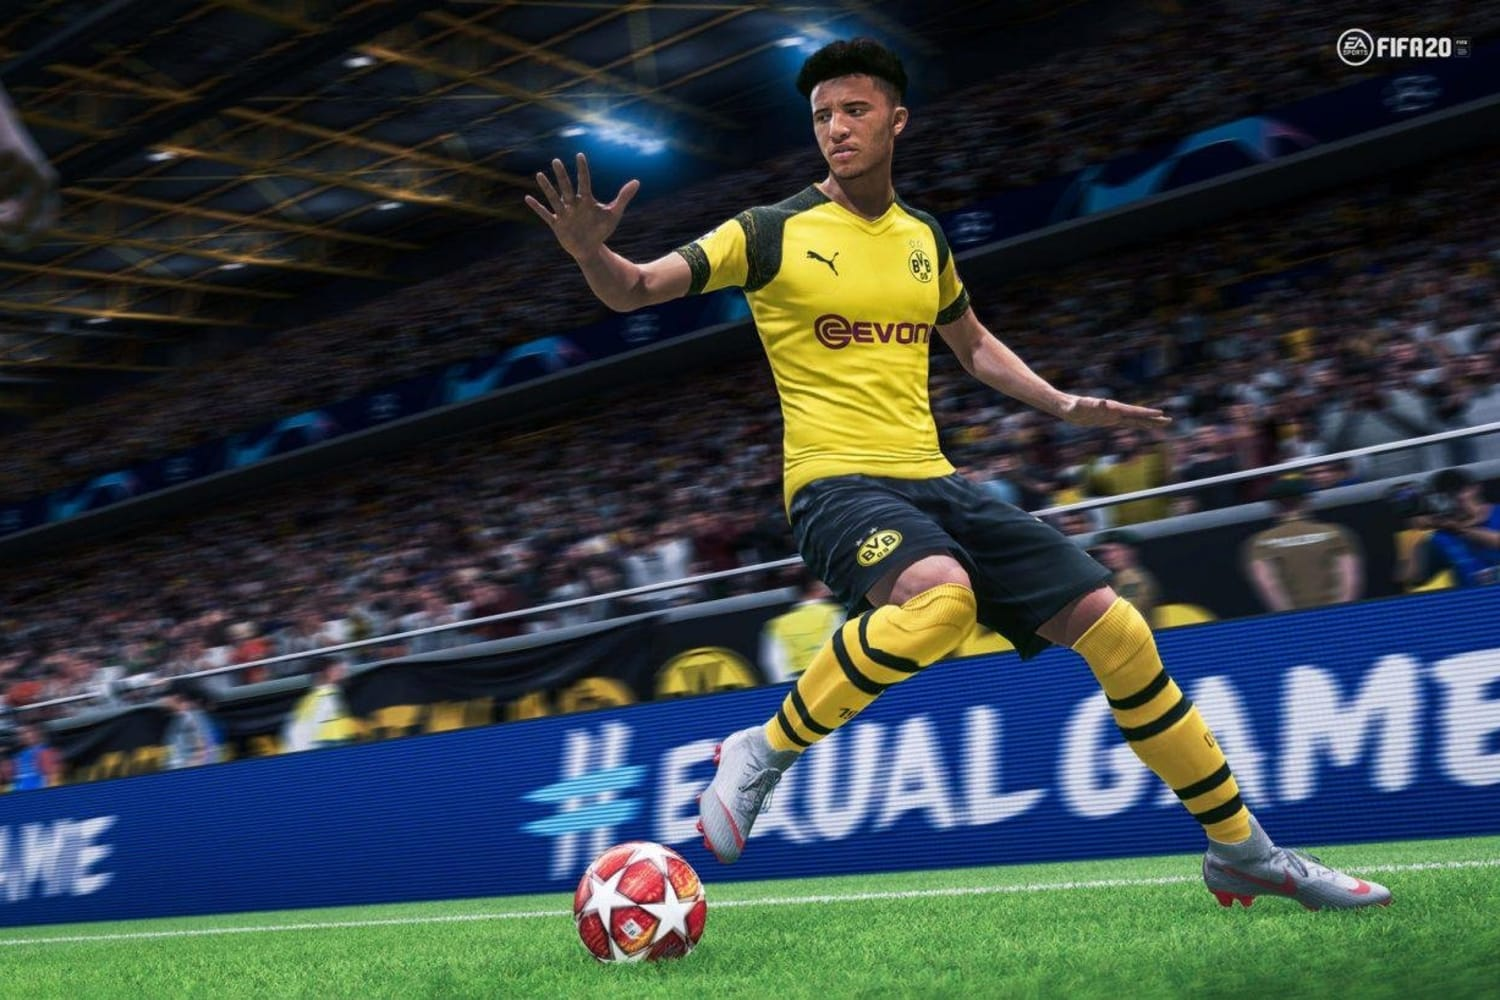 FIFA 20 skill moves: How to master the 8 new moves